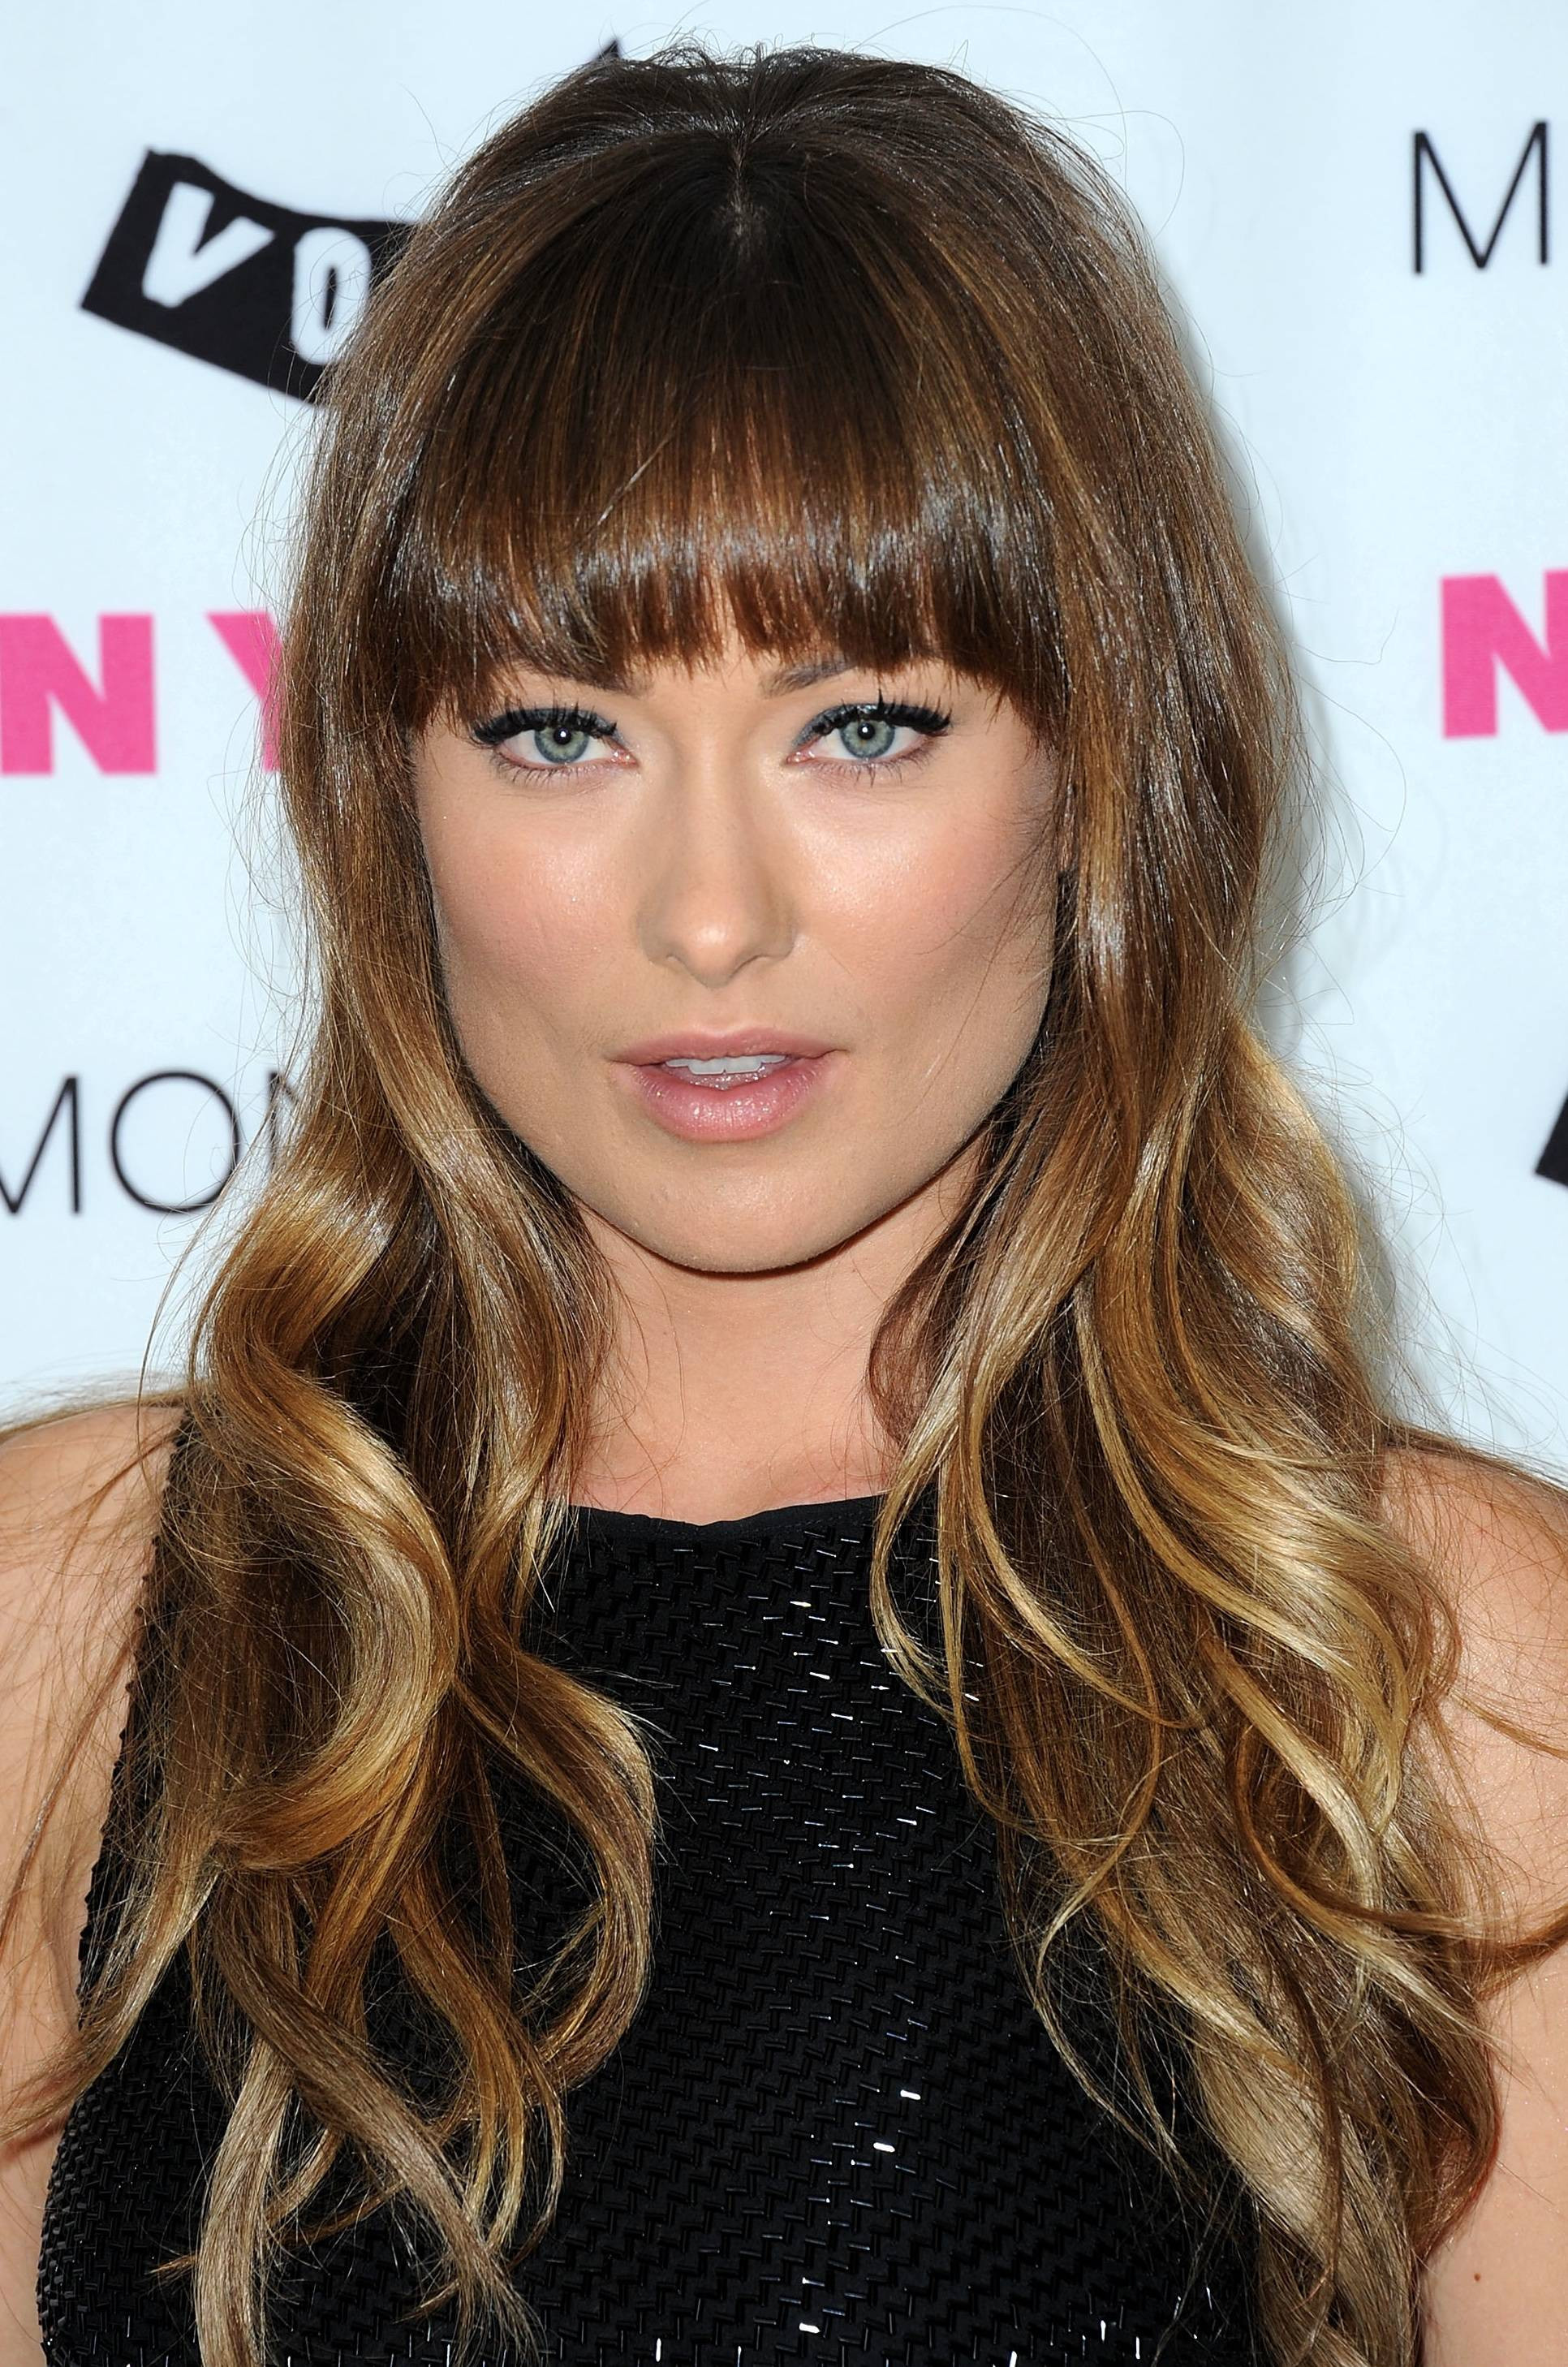 Best ideas about Ombre Hairstyles . Save or Pin olivia wilde Now.